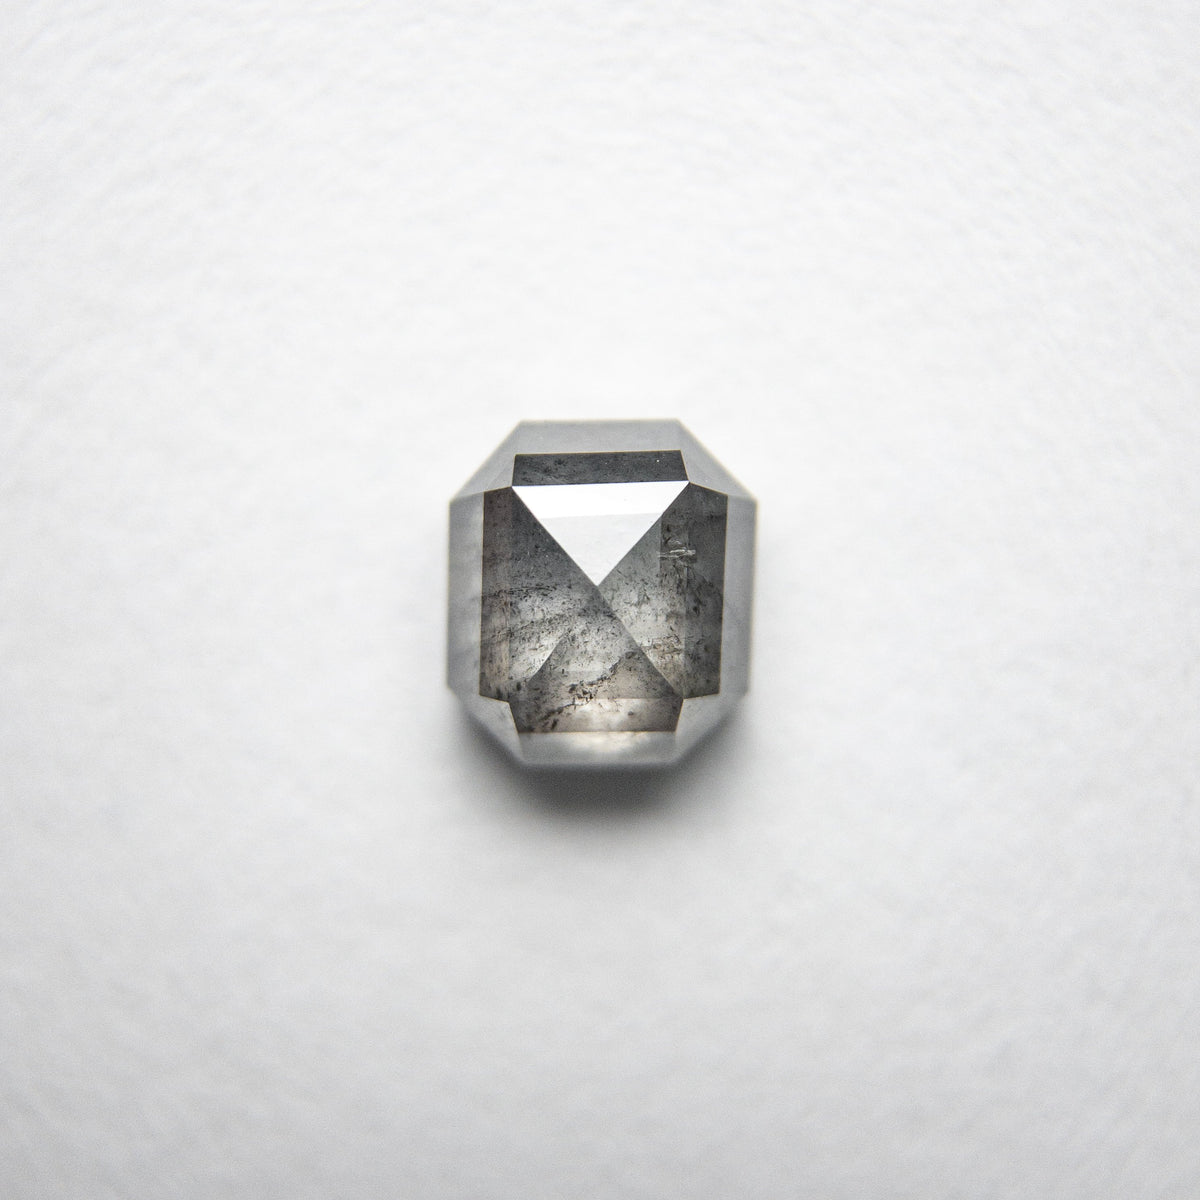 0.81ct 5.33x4.78x2.88mm Cut Corner Rectangle Rosecut 18134-46